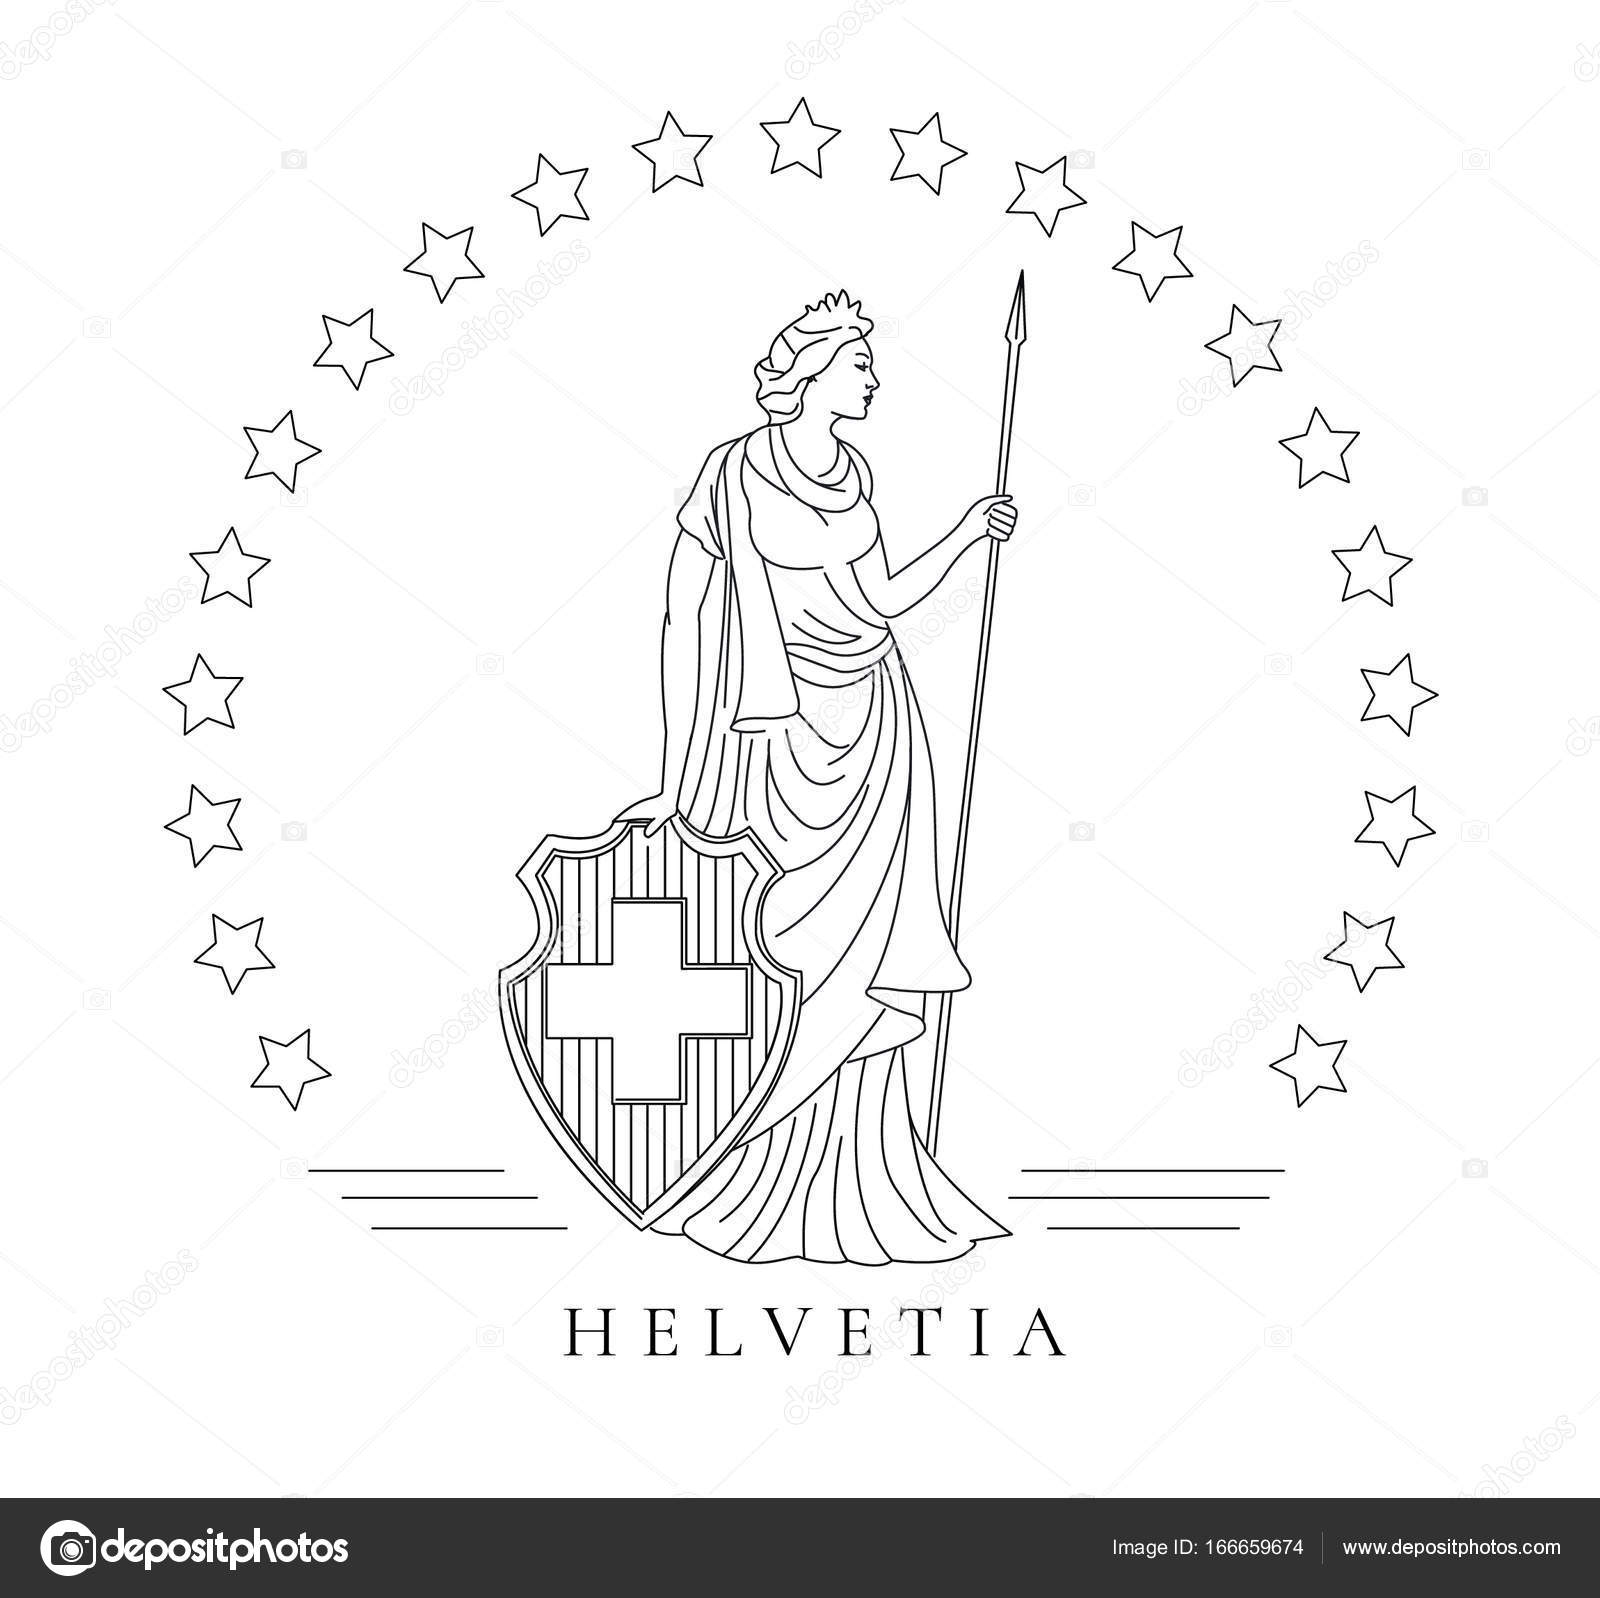 Personified symbol of Switzerland called Helvetia, graphic